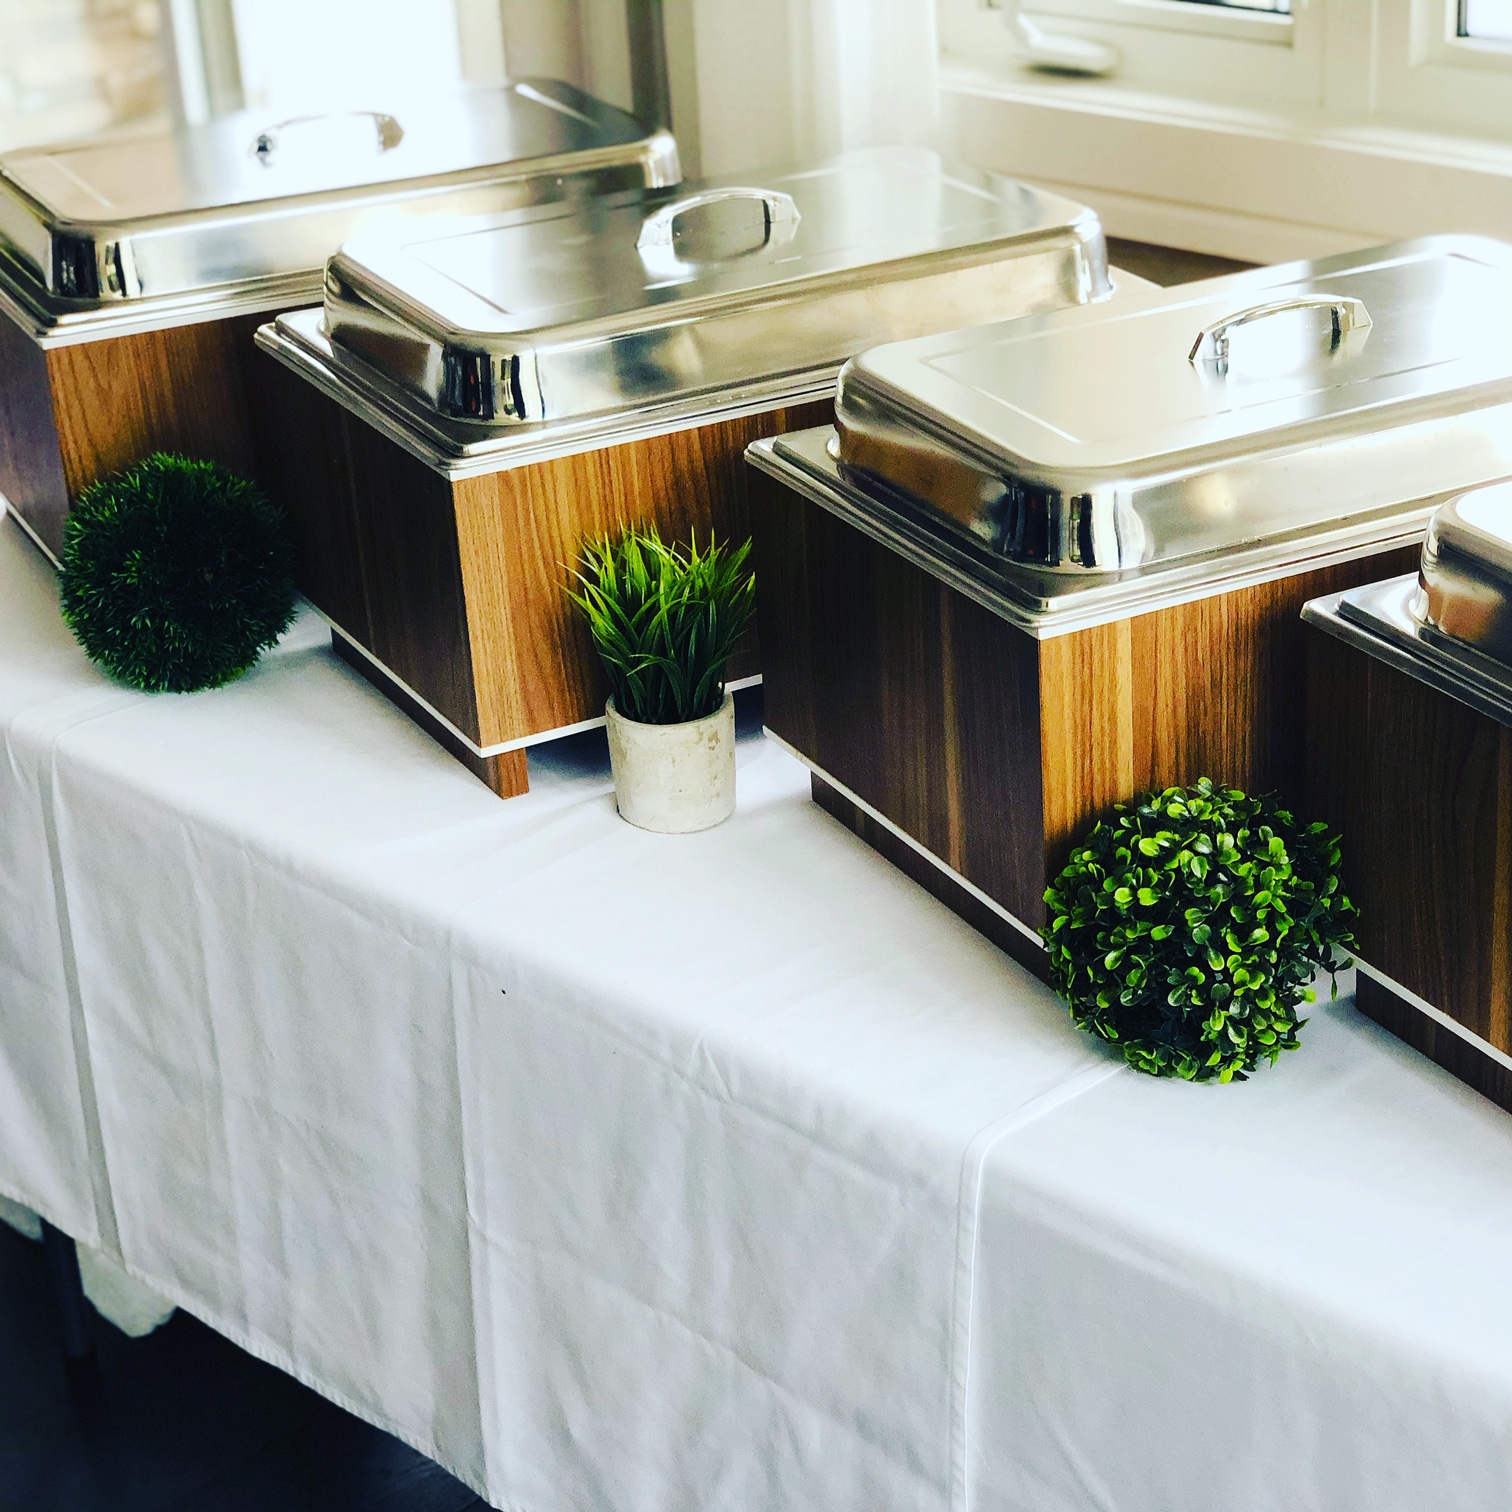 wooden chafers - Catering Service in Mississauga